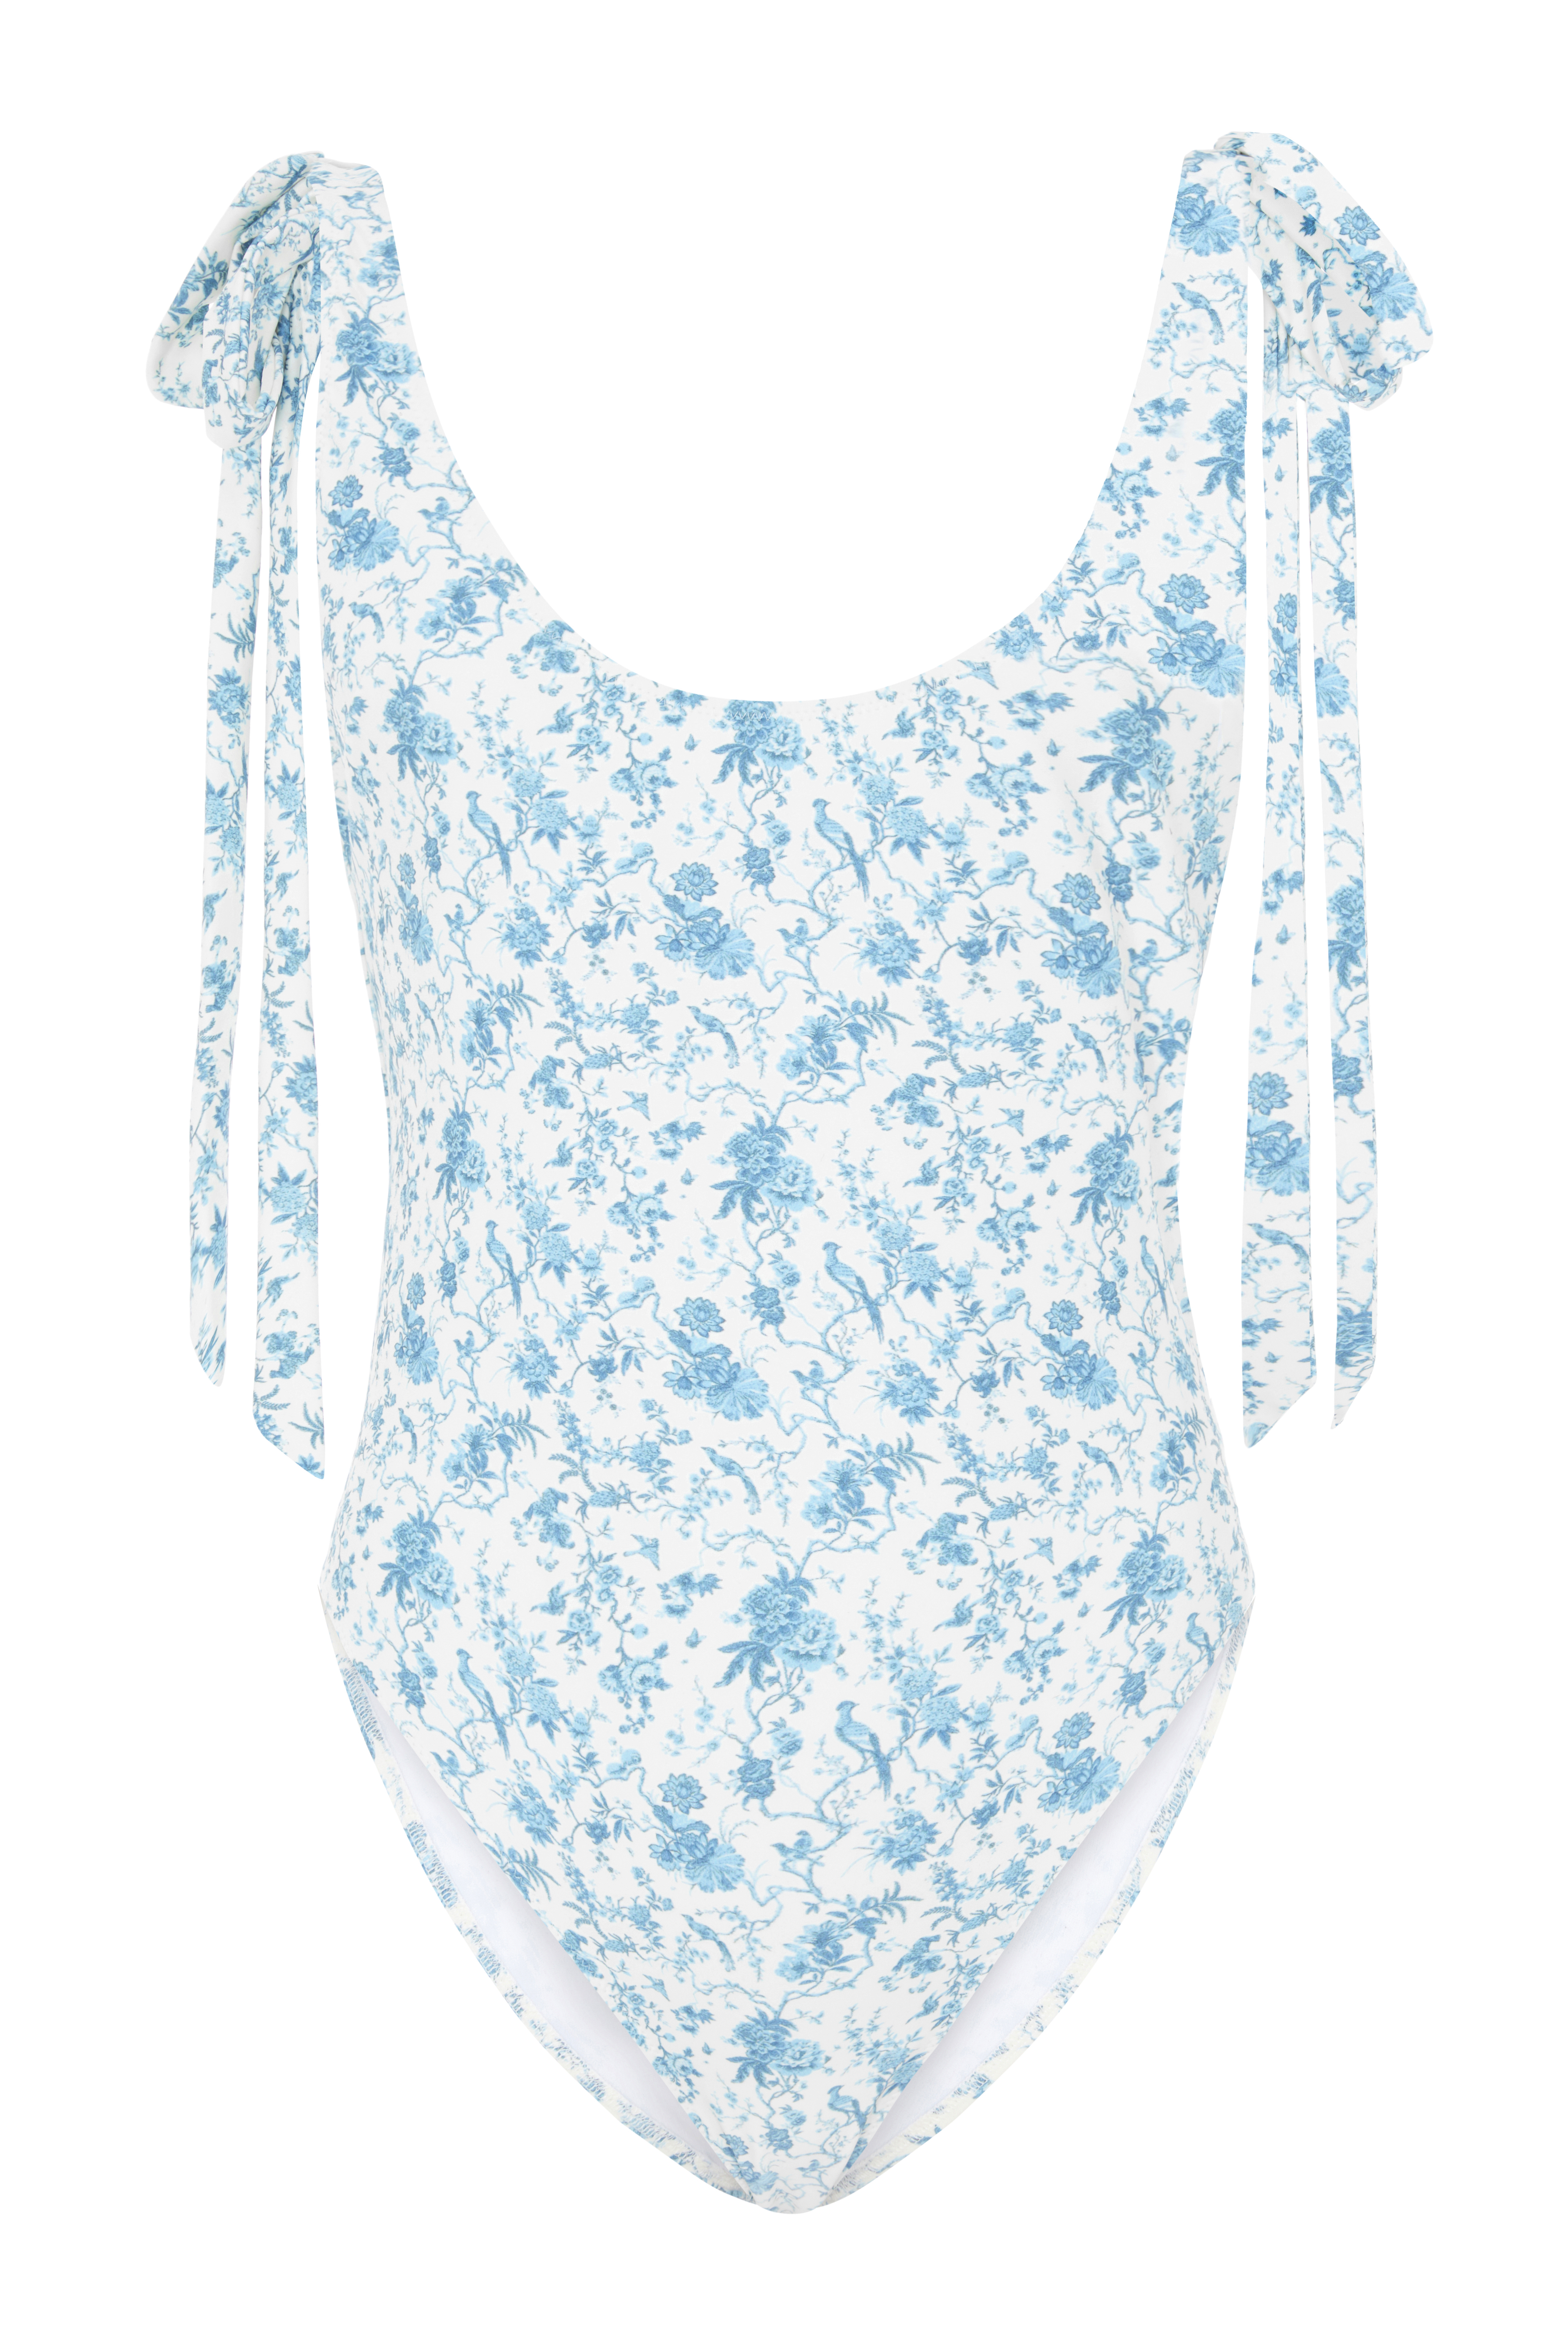 Cara Swimsuit - Bloom by Holiday Romance on curated-crowd.com